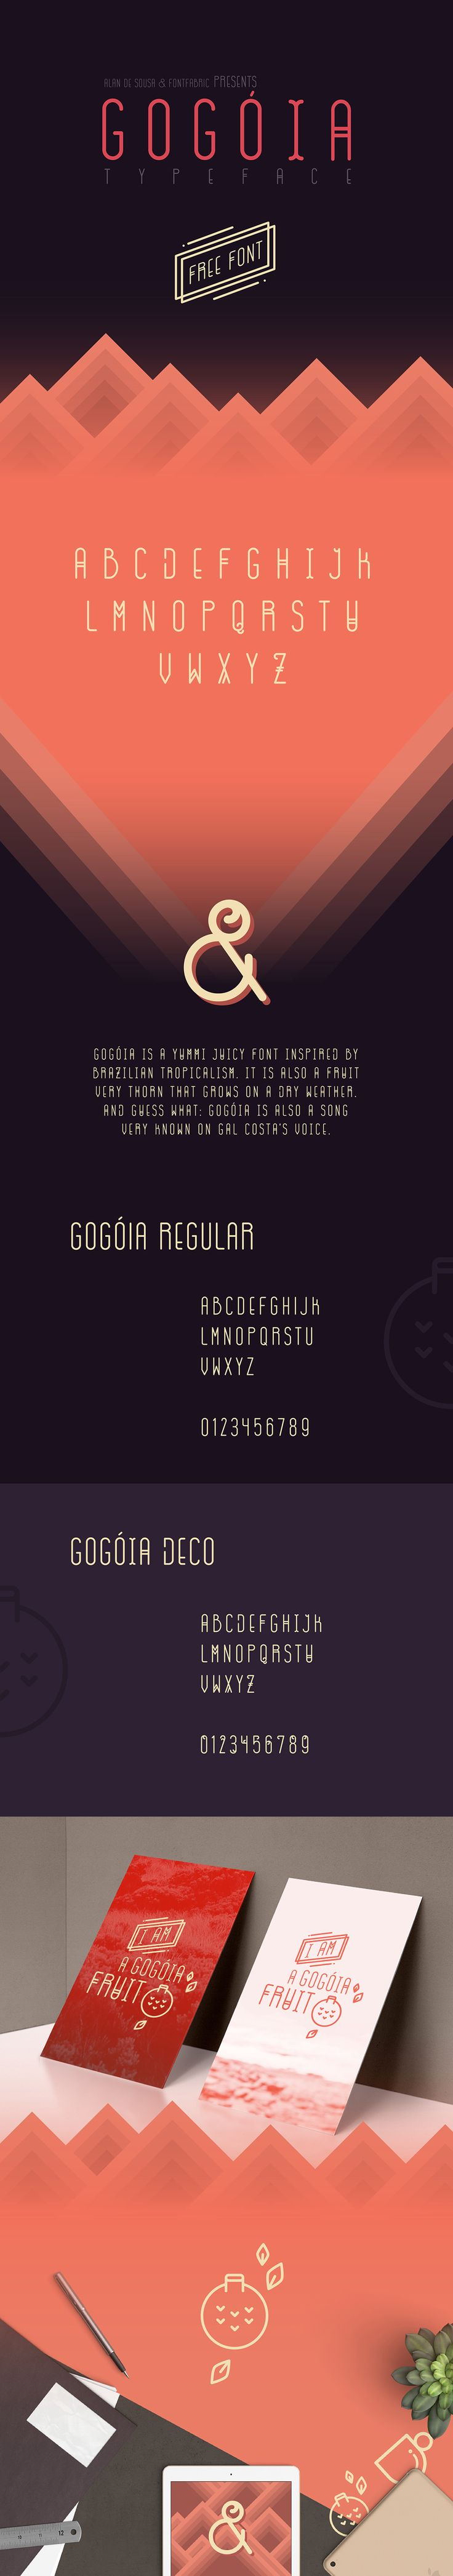 Gogoia is a yummi juicy free font inspired by brazilian tropicalism and designed by Alan de Sousa . It is also a very thorn fruit that grows on a dry ...